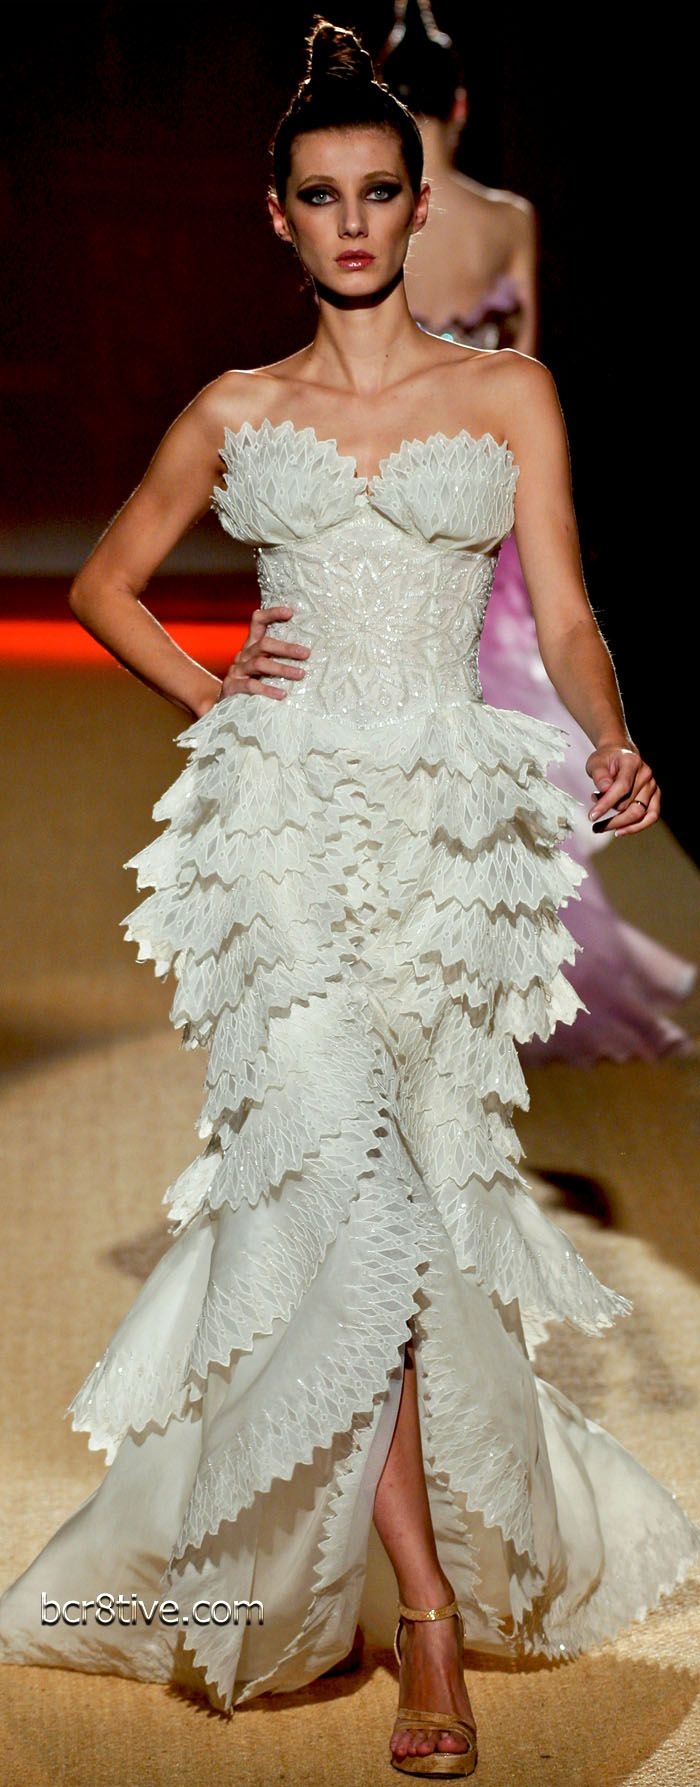 My reaction when I first saw this: Holy crap! Fausto Sarli Couture - Spring Summer 2009